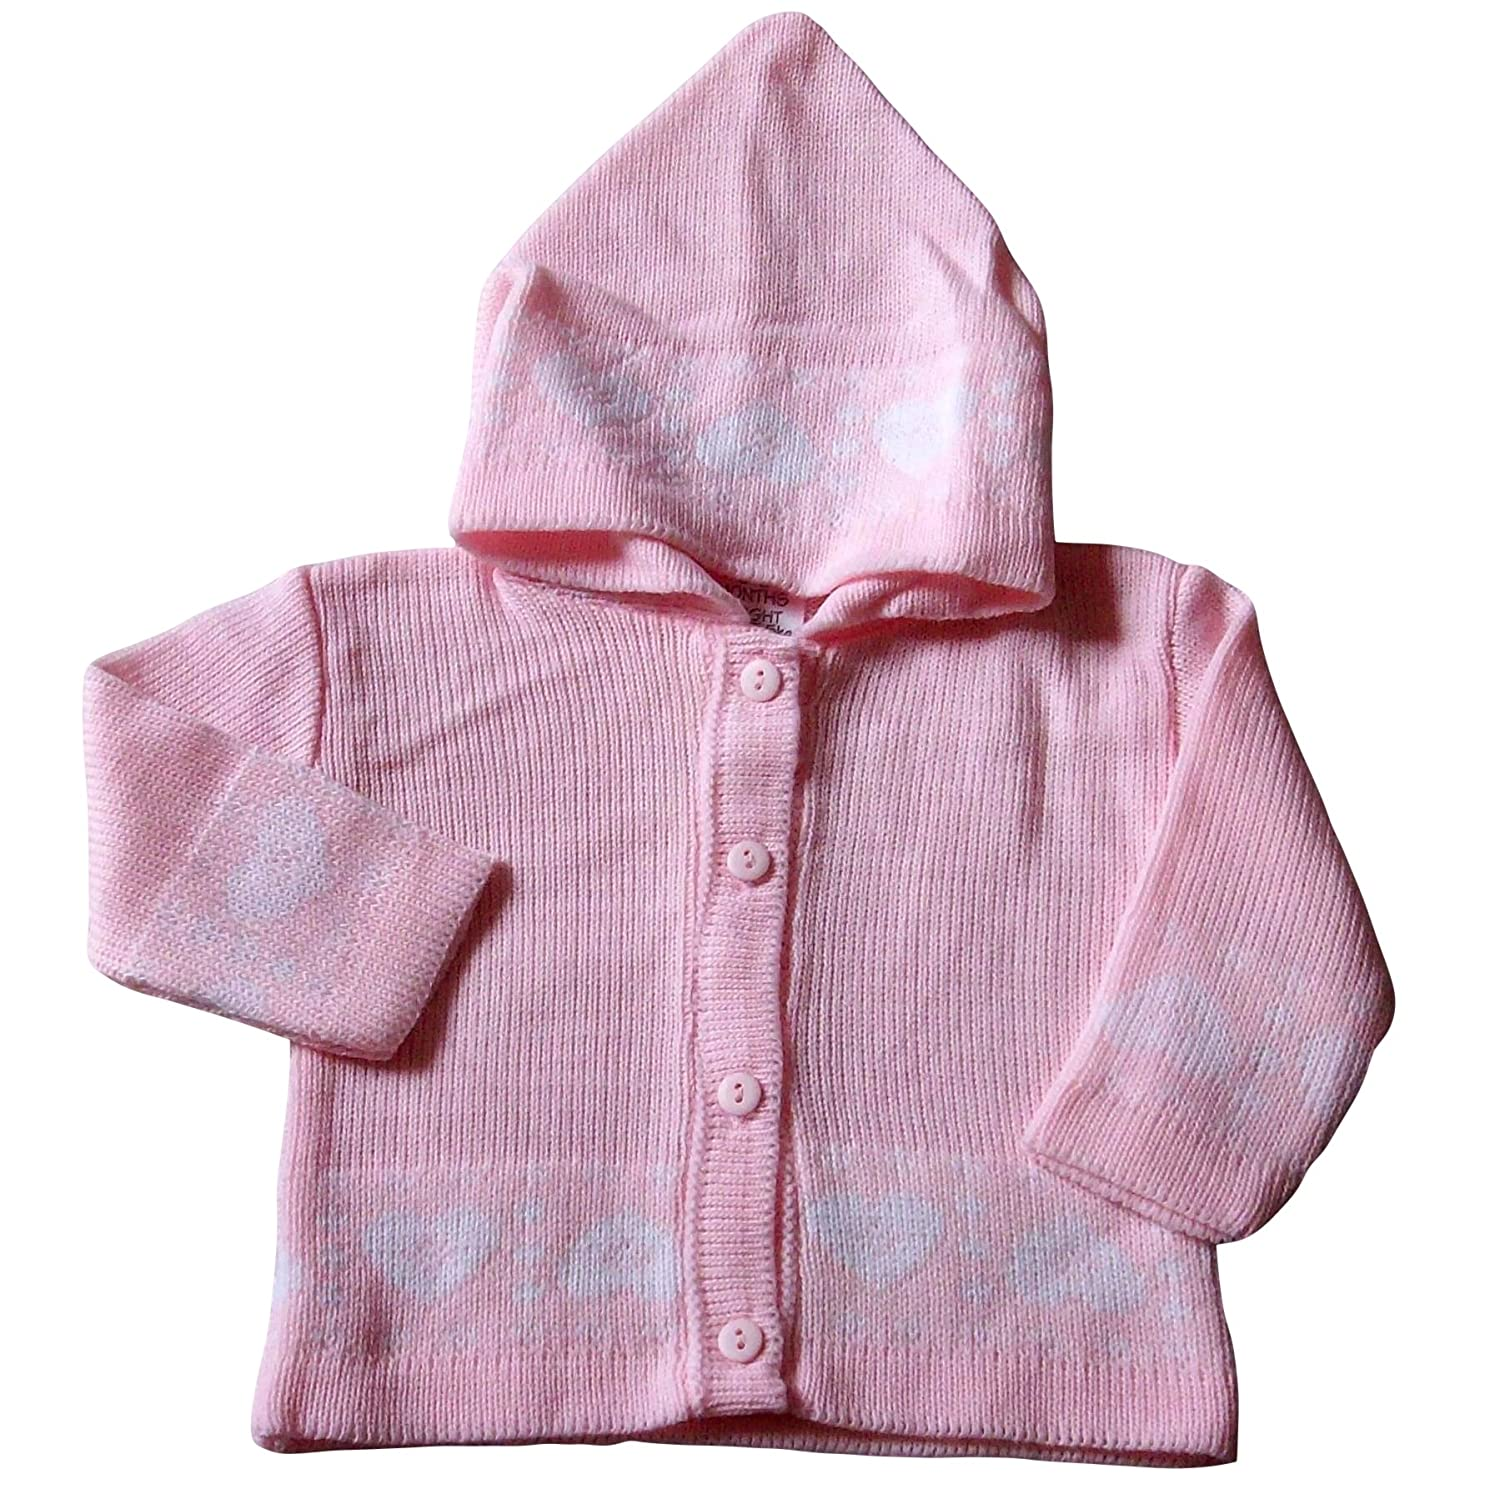 a7c87ac5f 6-9 months - Baby Girls Cardigan - Beautiful Pink and White LOVE ...